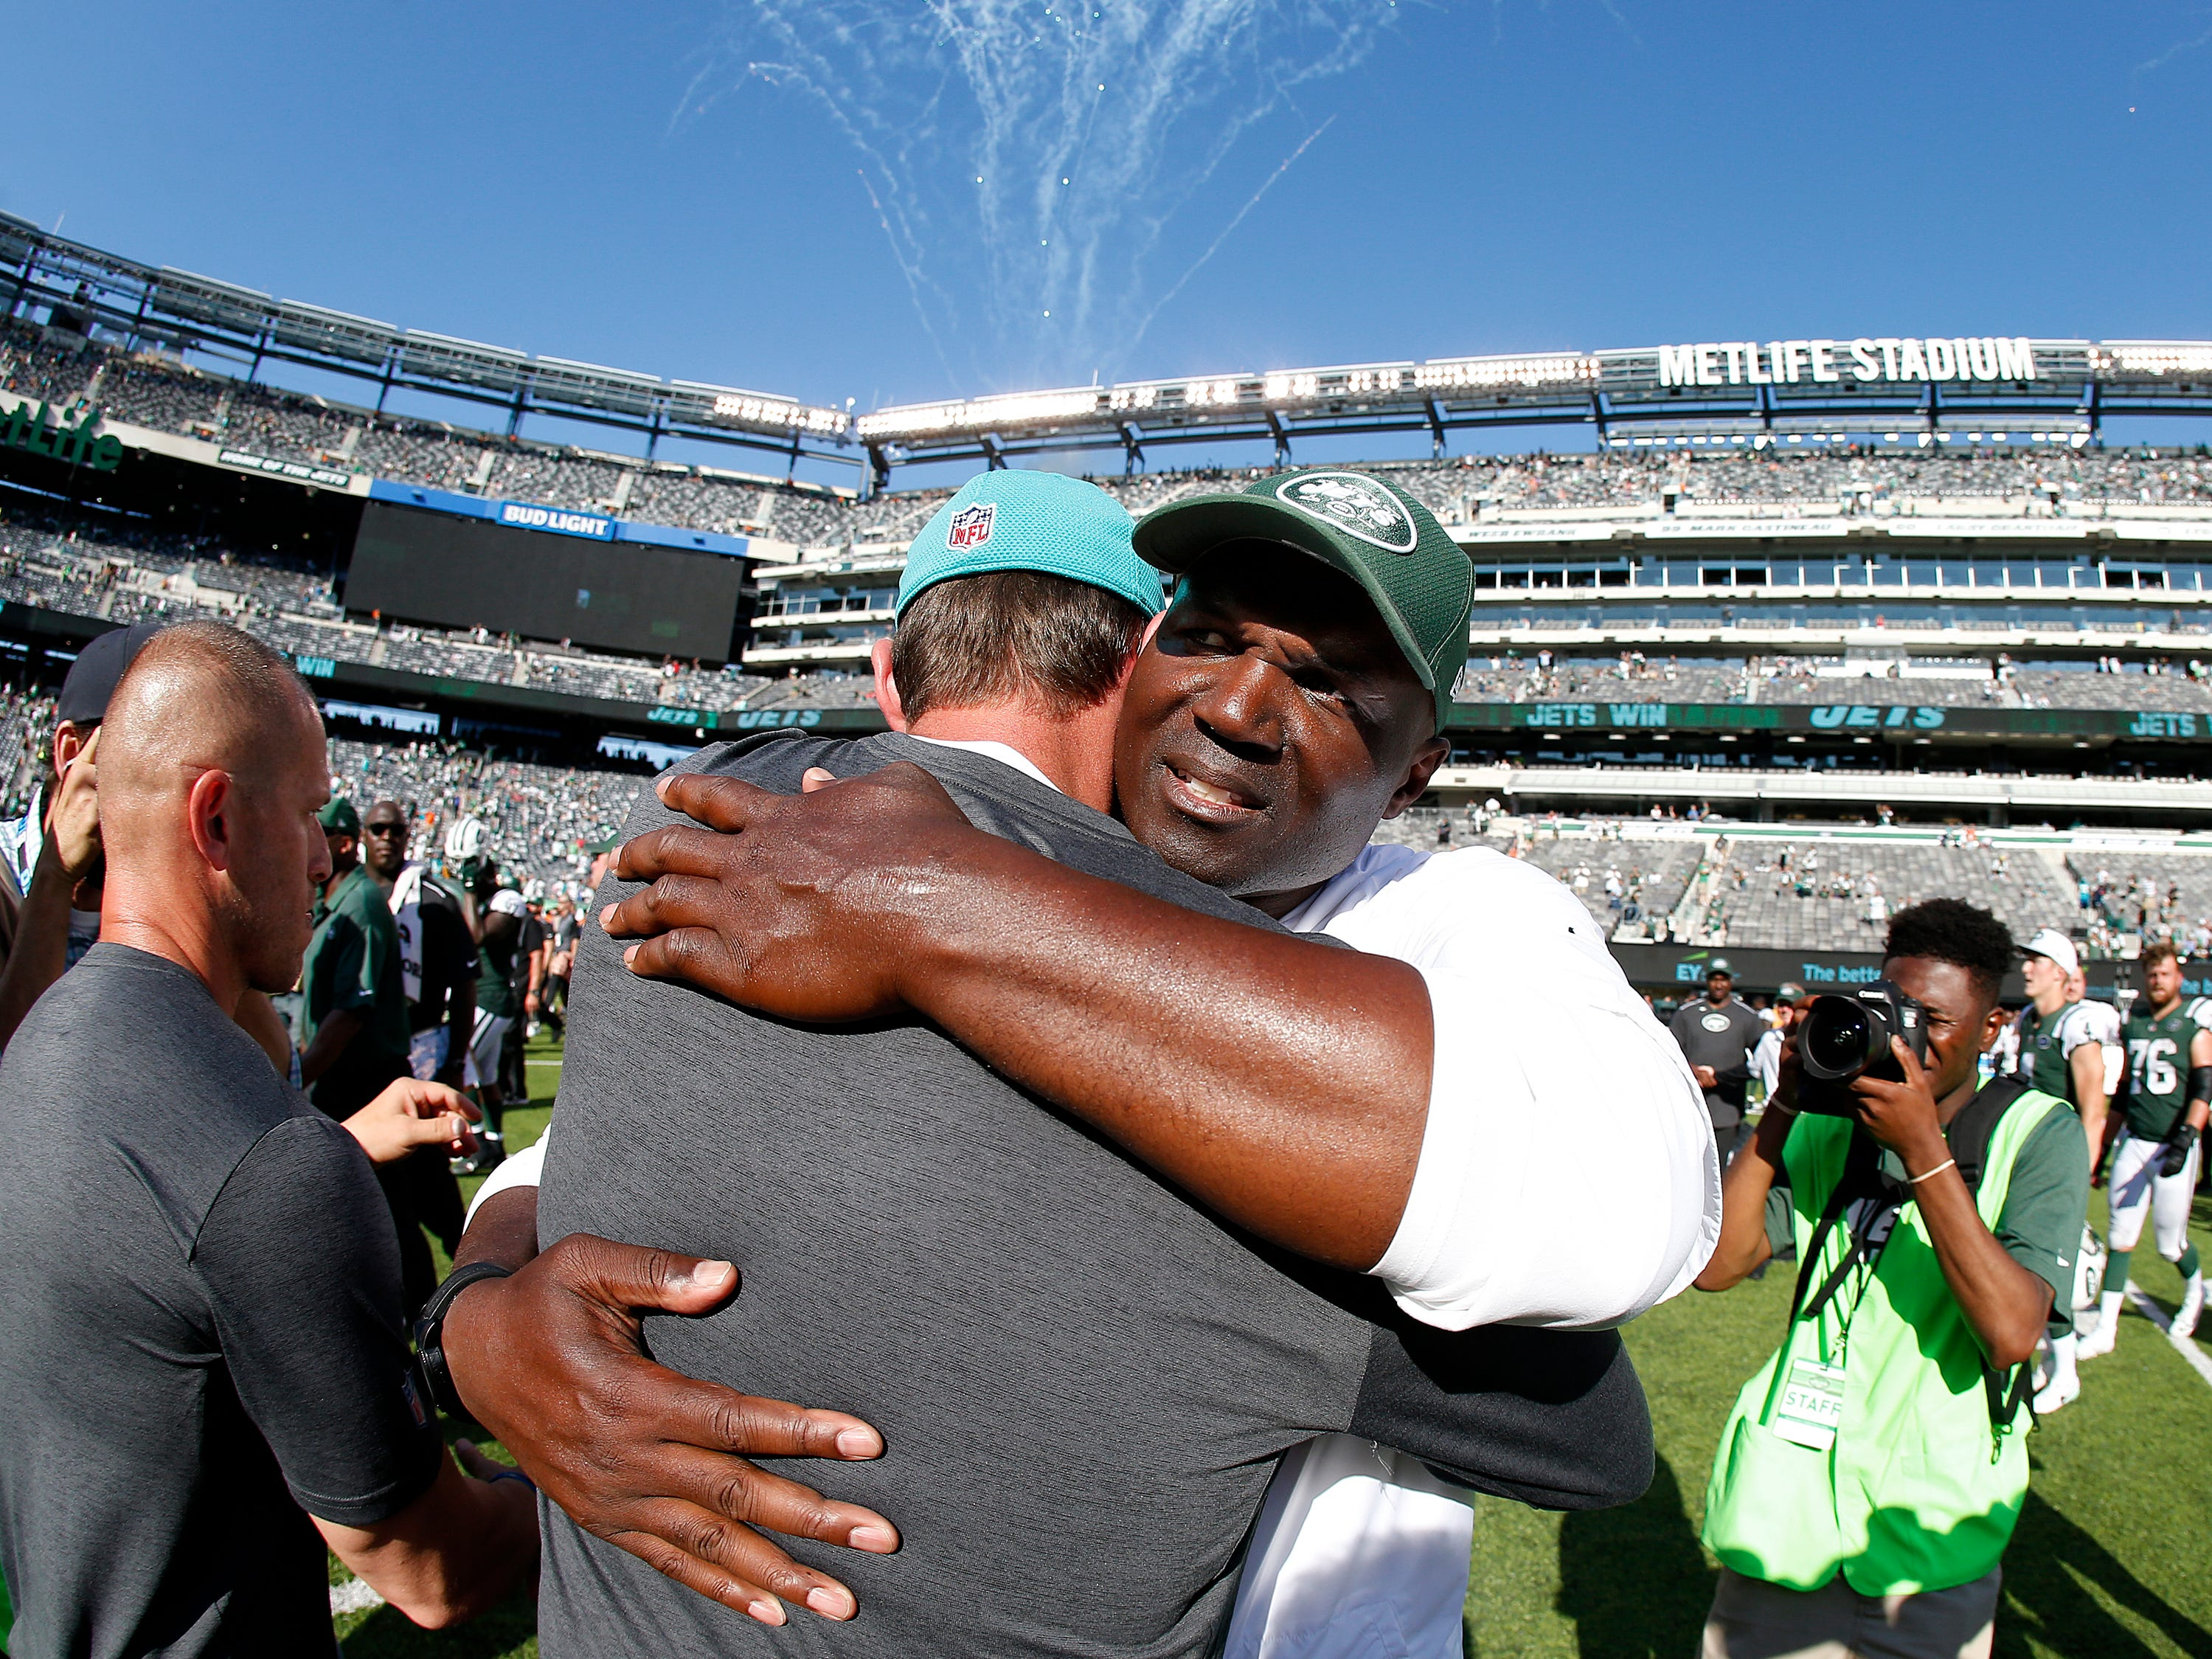 EAST RUTHERFORD, NJ - Head coach Adam Gase of the Miami Dolphins and head coach Todd Bowles of the New York Jets meet at midfield after an NFL game at MetLife Stadium on September 24, 2017 in East Rutherford, New Jersey. The New York Jets defeated the Miami Dolphins 20-6.